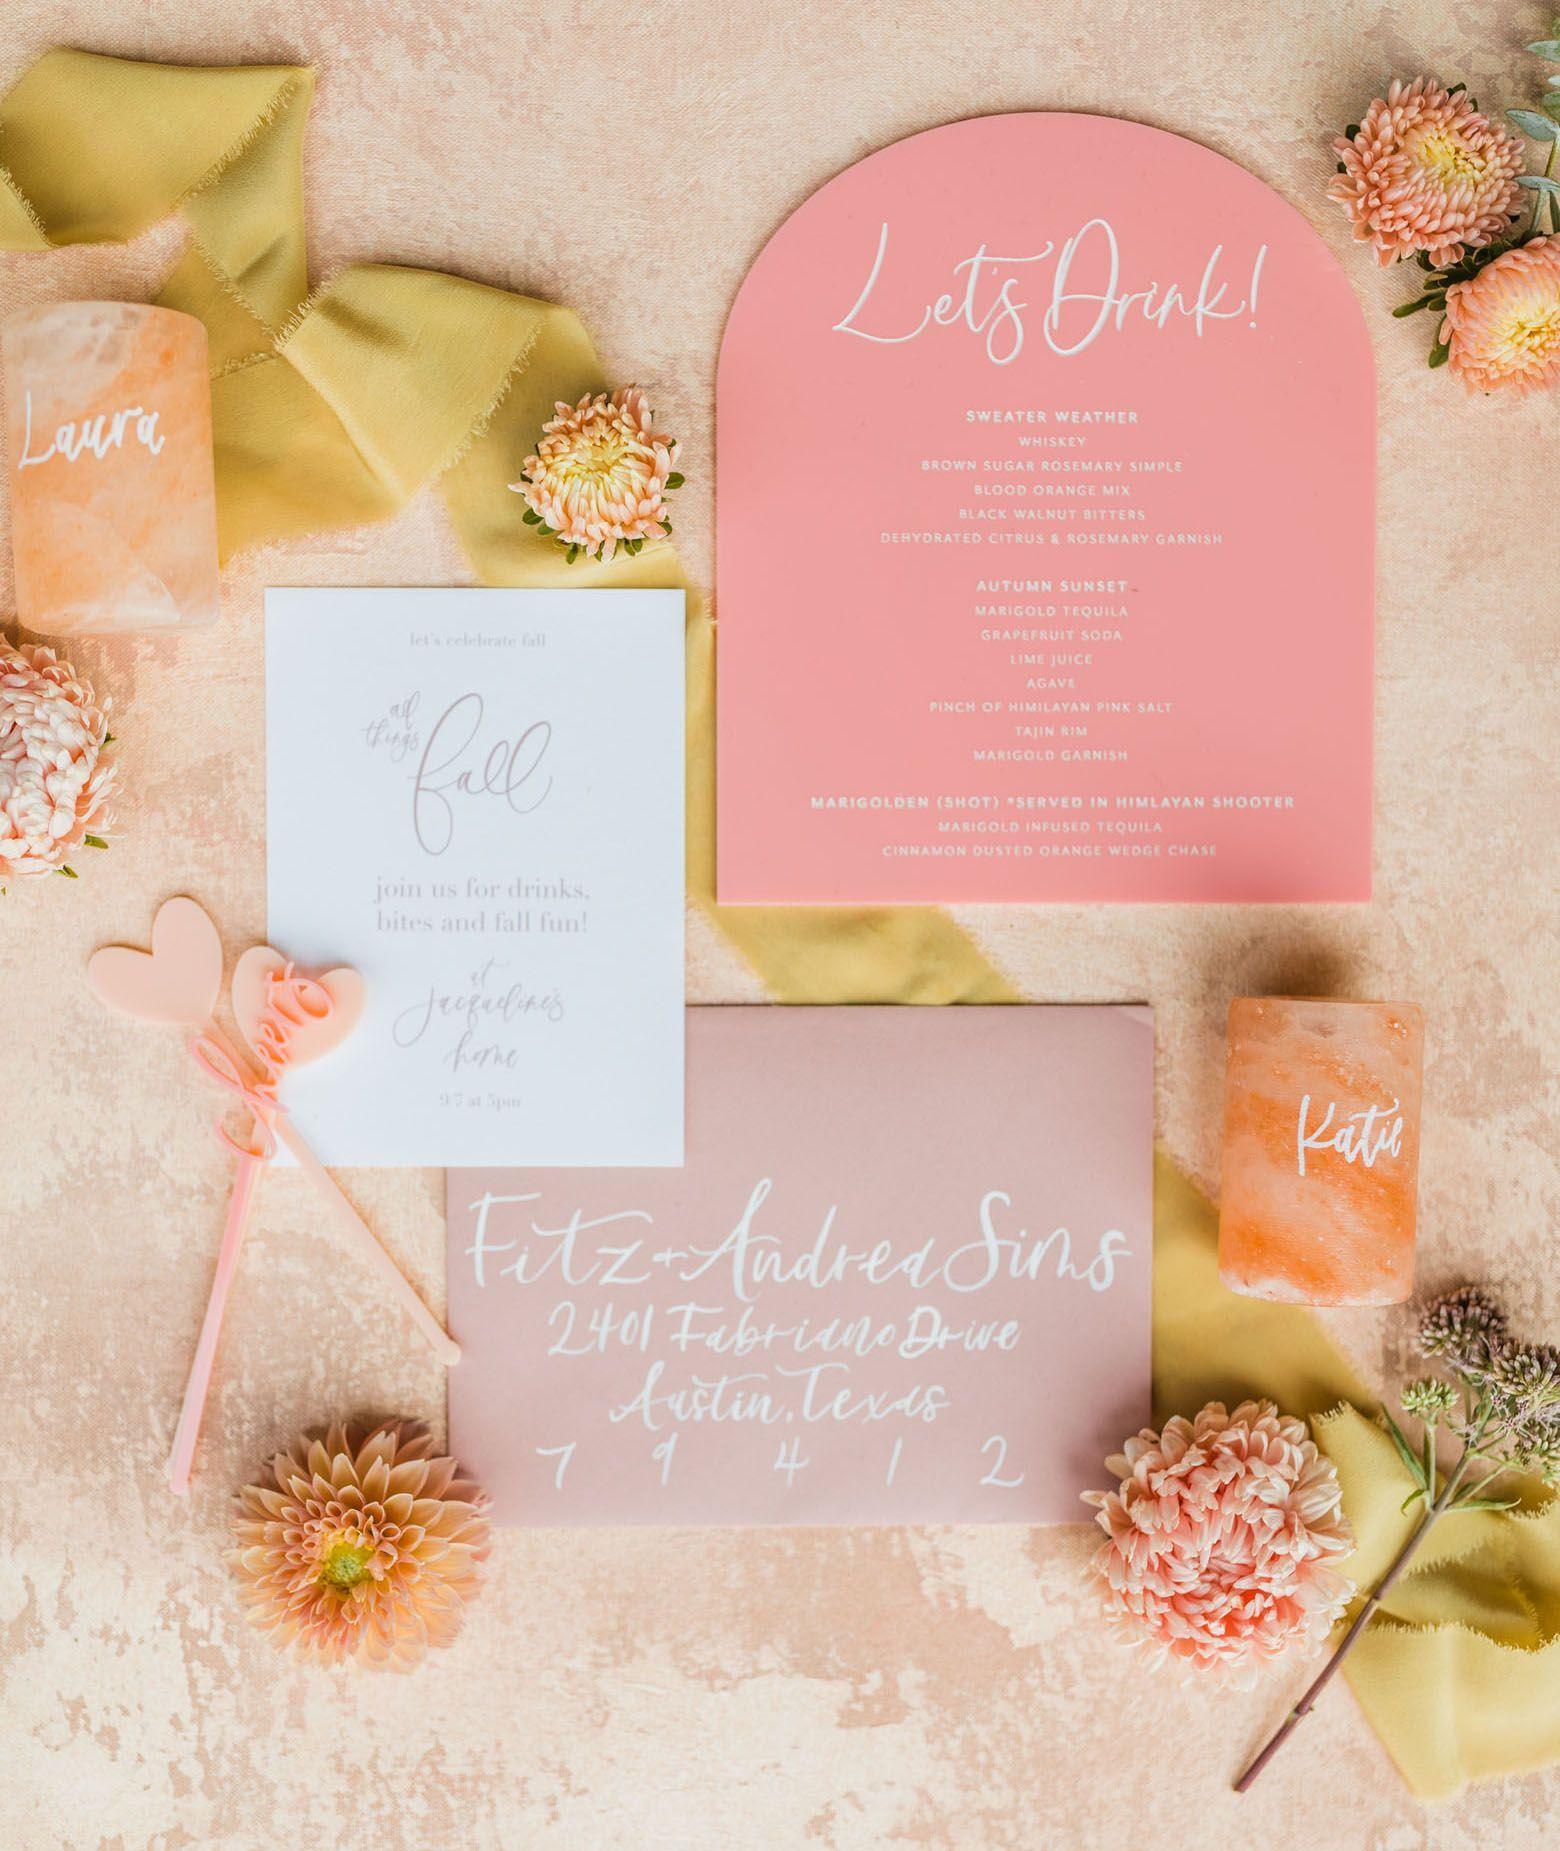 How To Host A Chic Fall Party At Home Green Wedding Shoes In 2020 Fall Party Invitations Wedding Invitations Fall Party